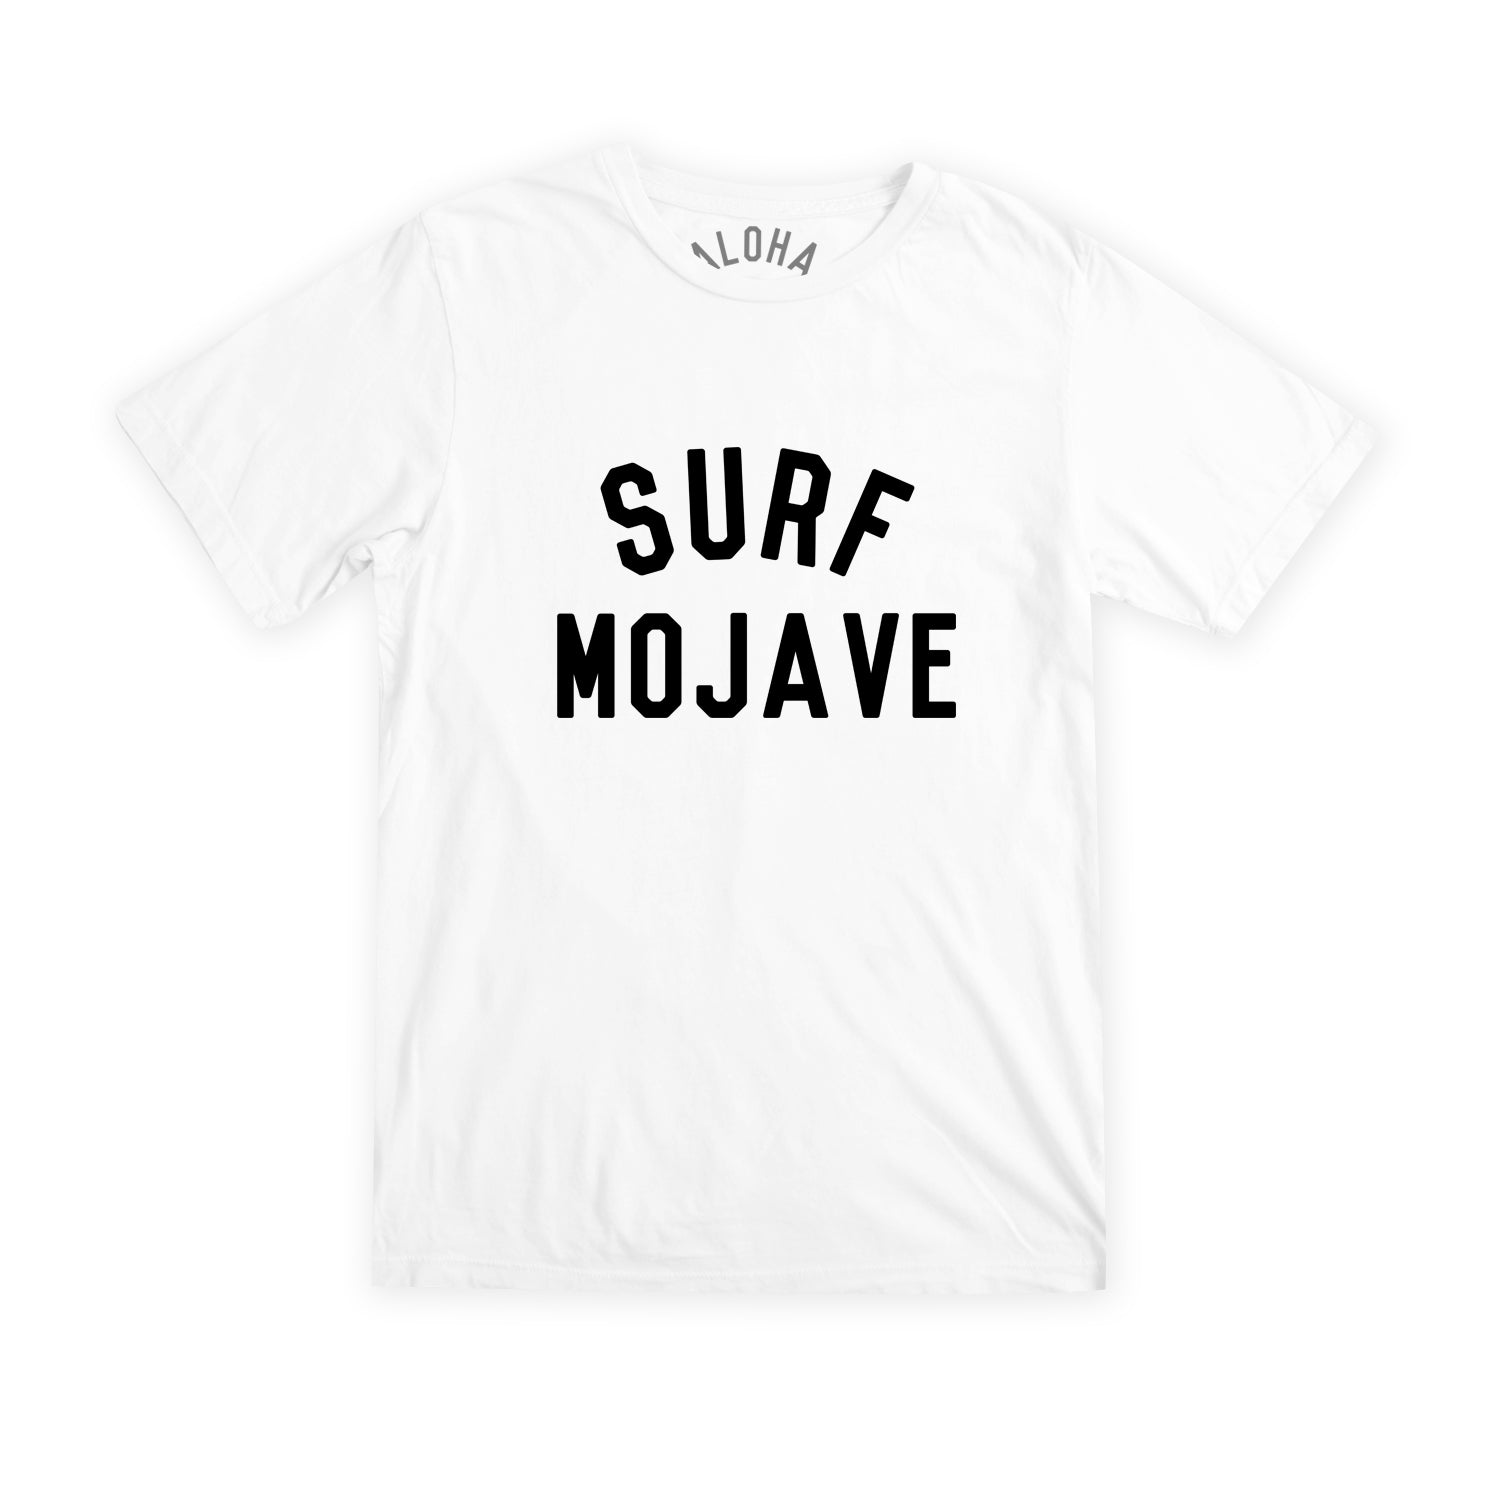 Aloha Beach Club - Surf Mojave Black on White - Aloha Beach Club